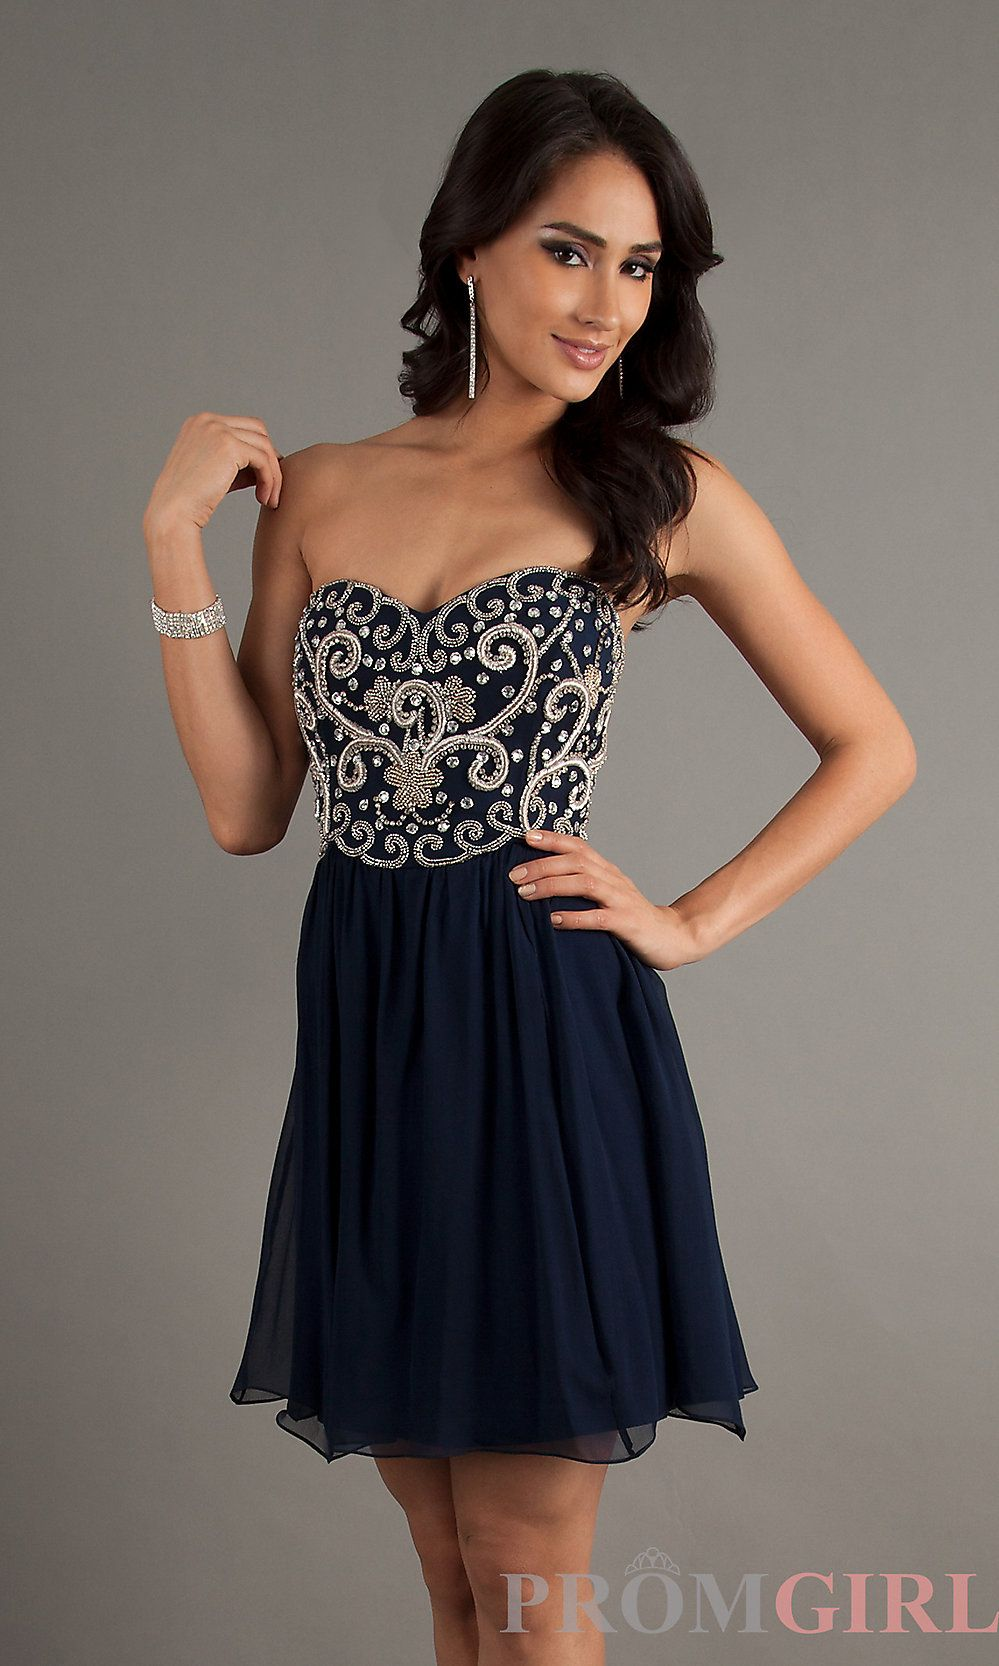 Strapless blue cocktail dress by sean fashion for women wears